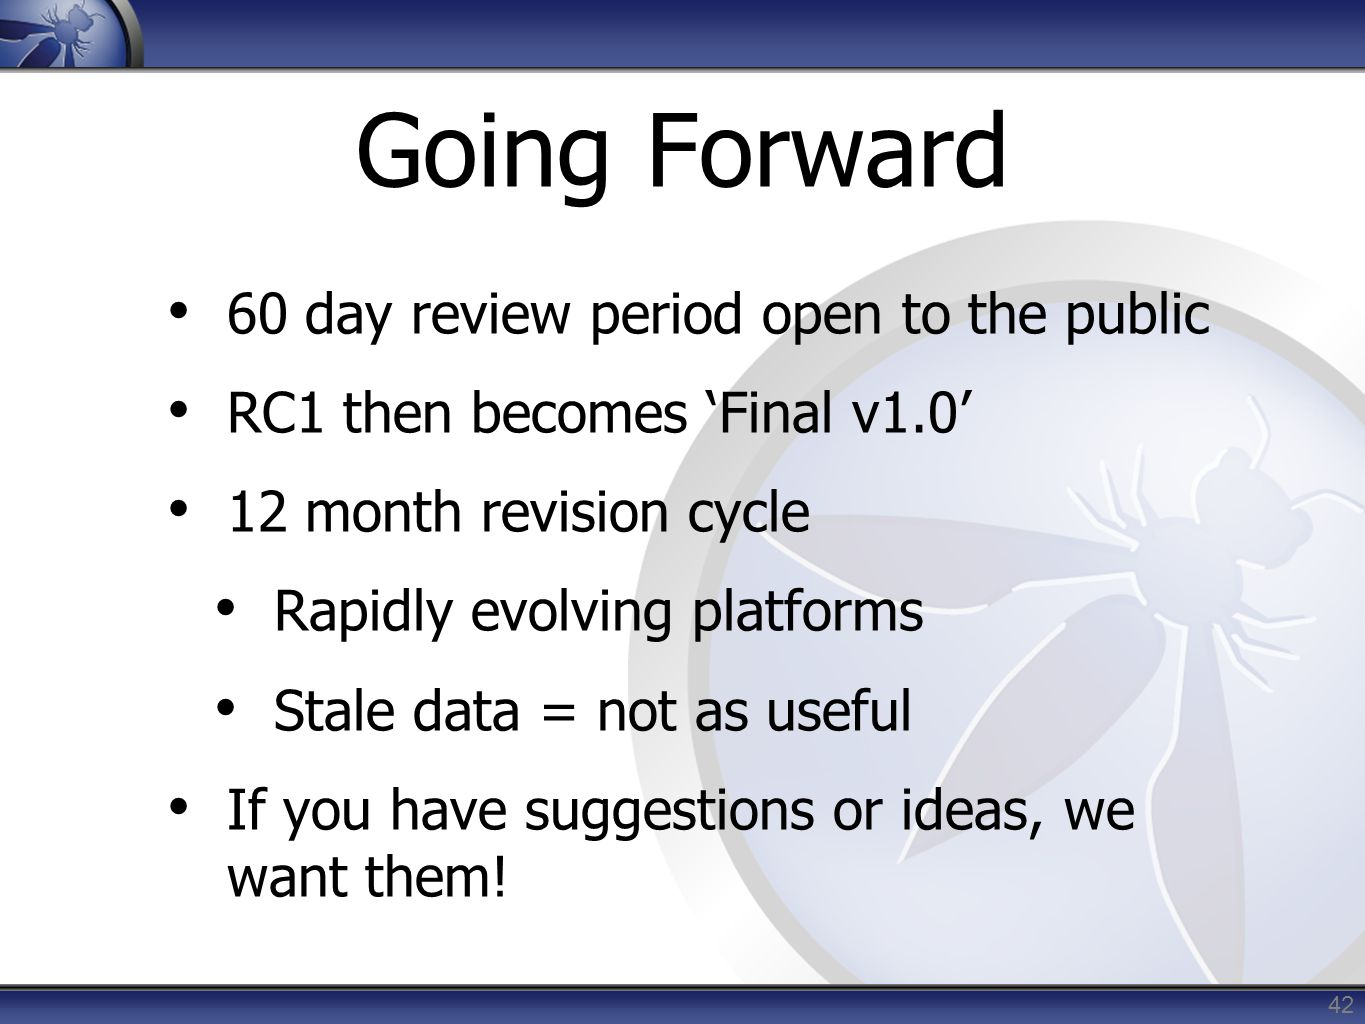 42 Going Forward 60 day review period open to the public RC1 then becomes 'Final v1.0' 12 month revision cycle Rapidly evolving platforms Stale data =